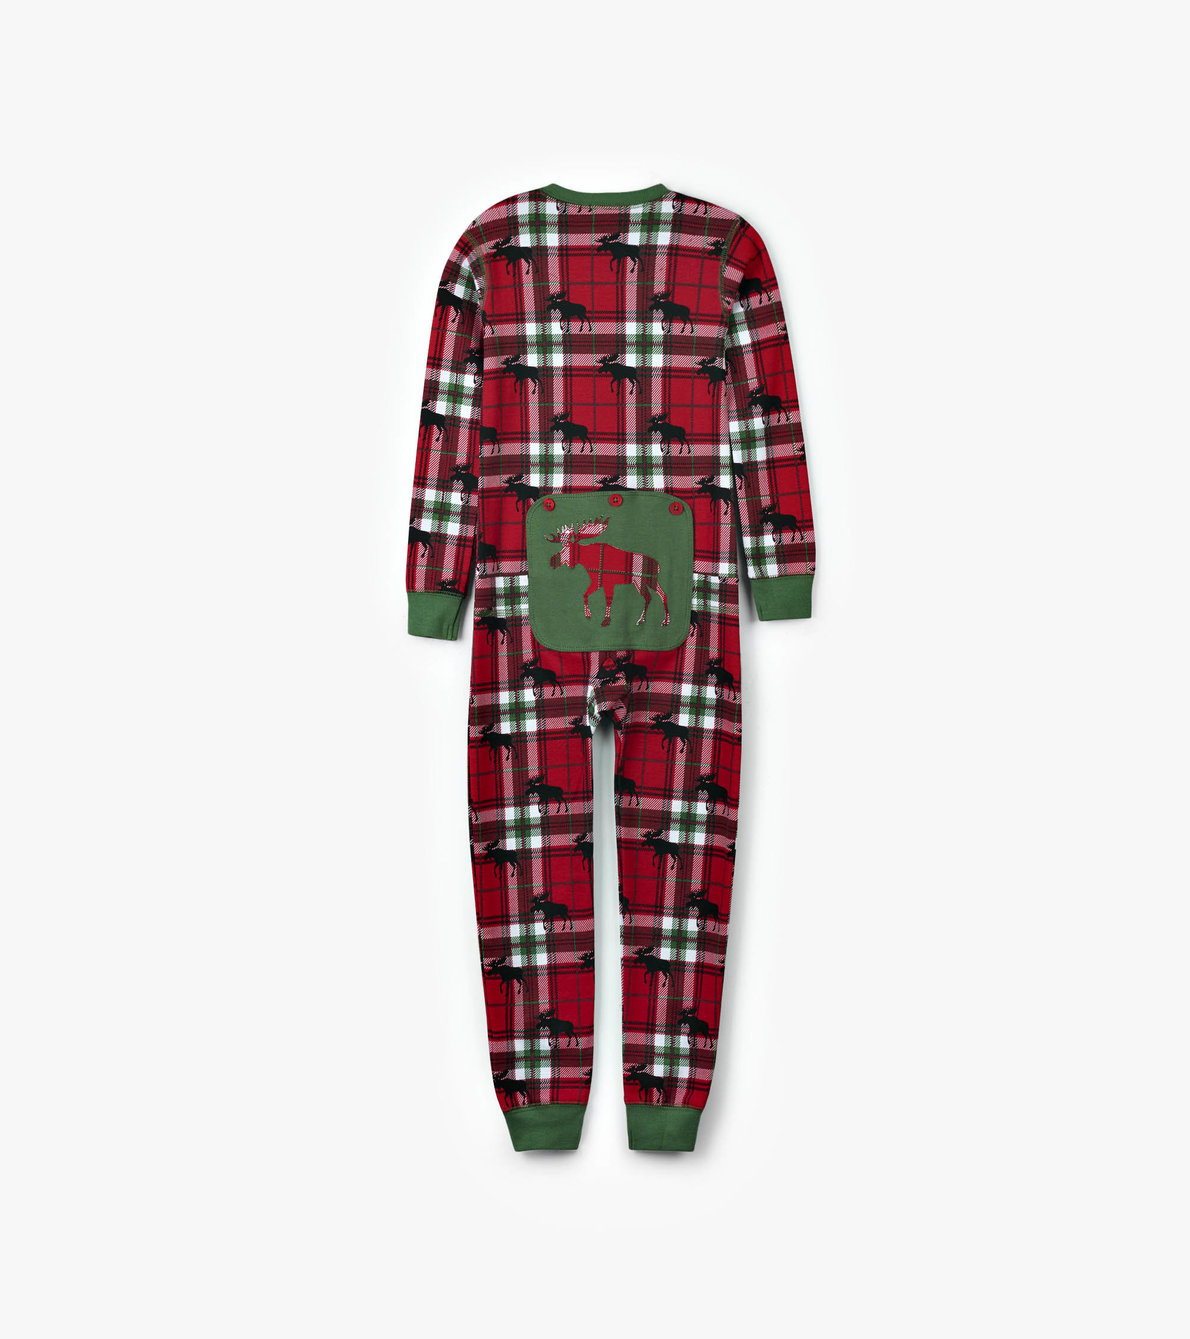 View larger image of Holiday Moose on Plaid Kids Union Suit